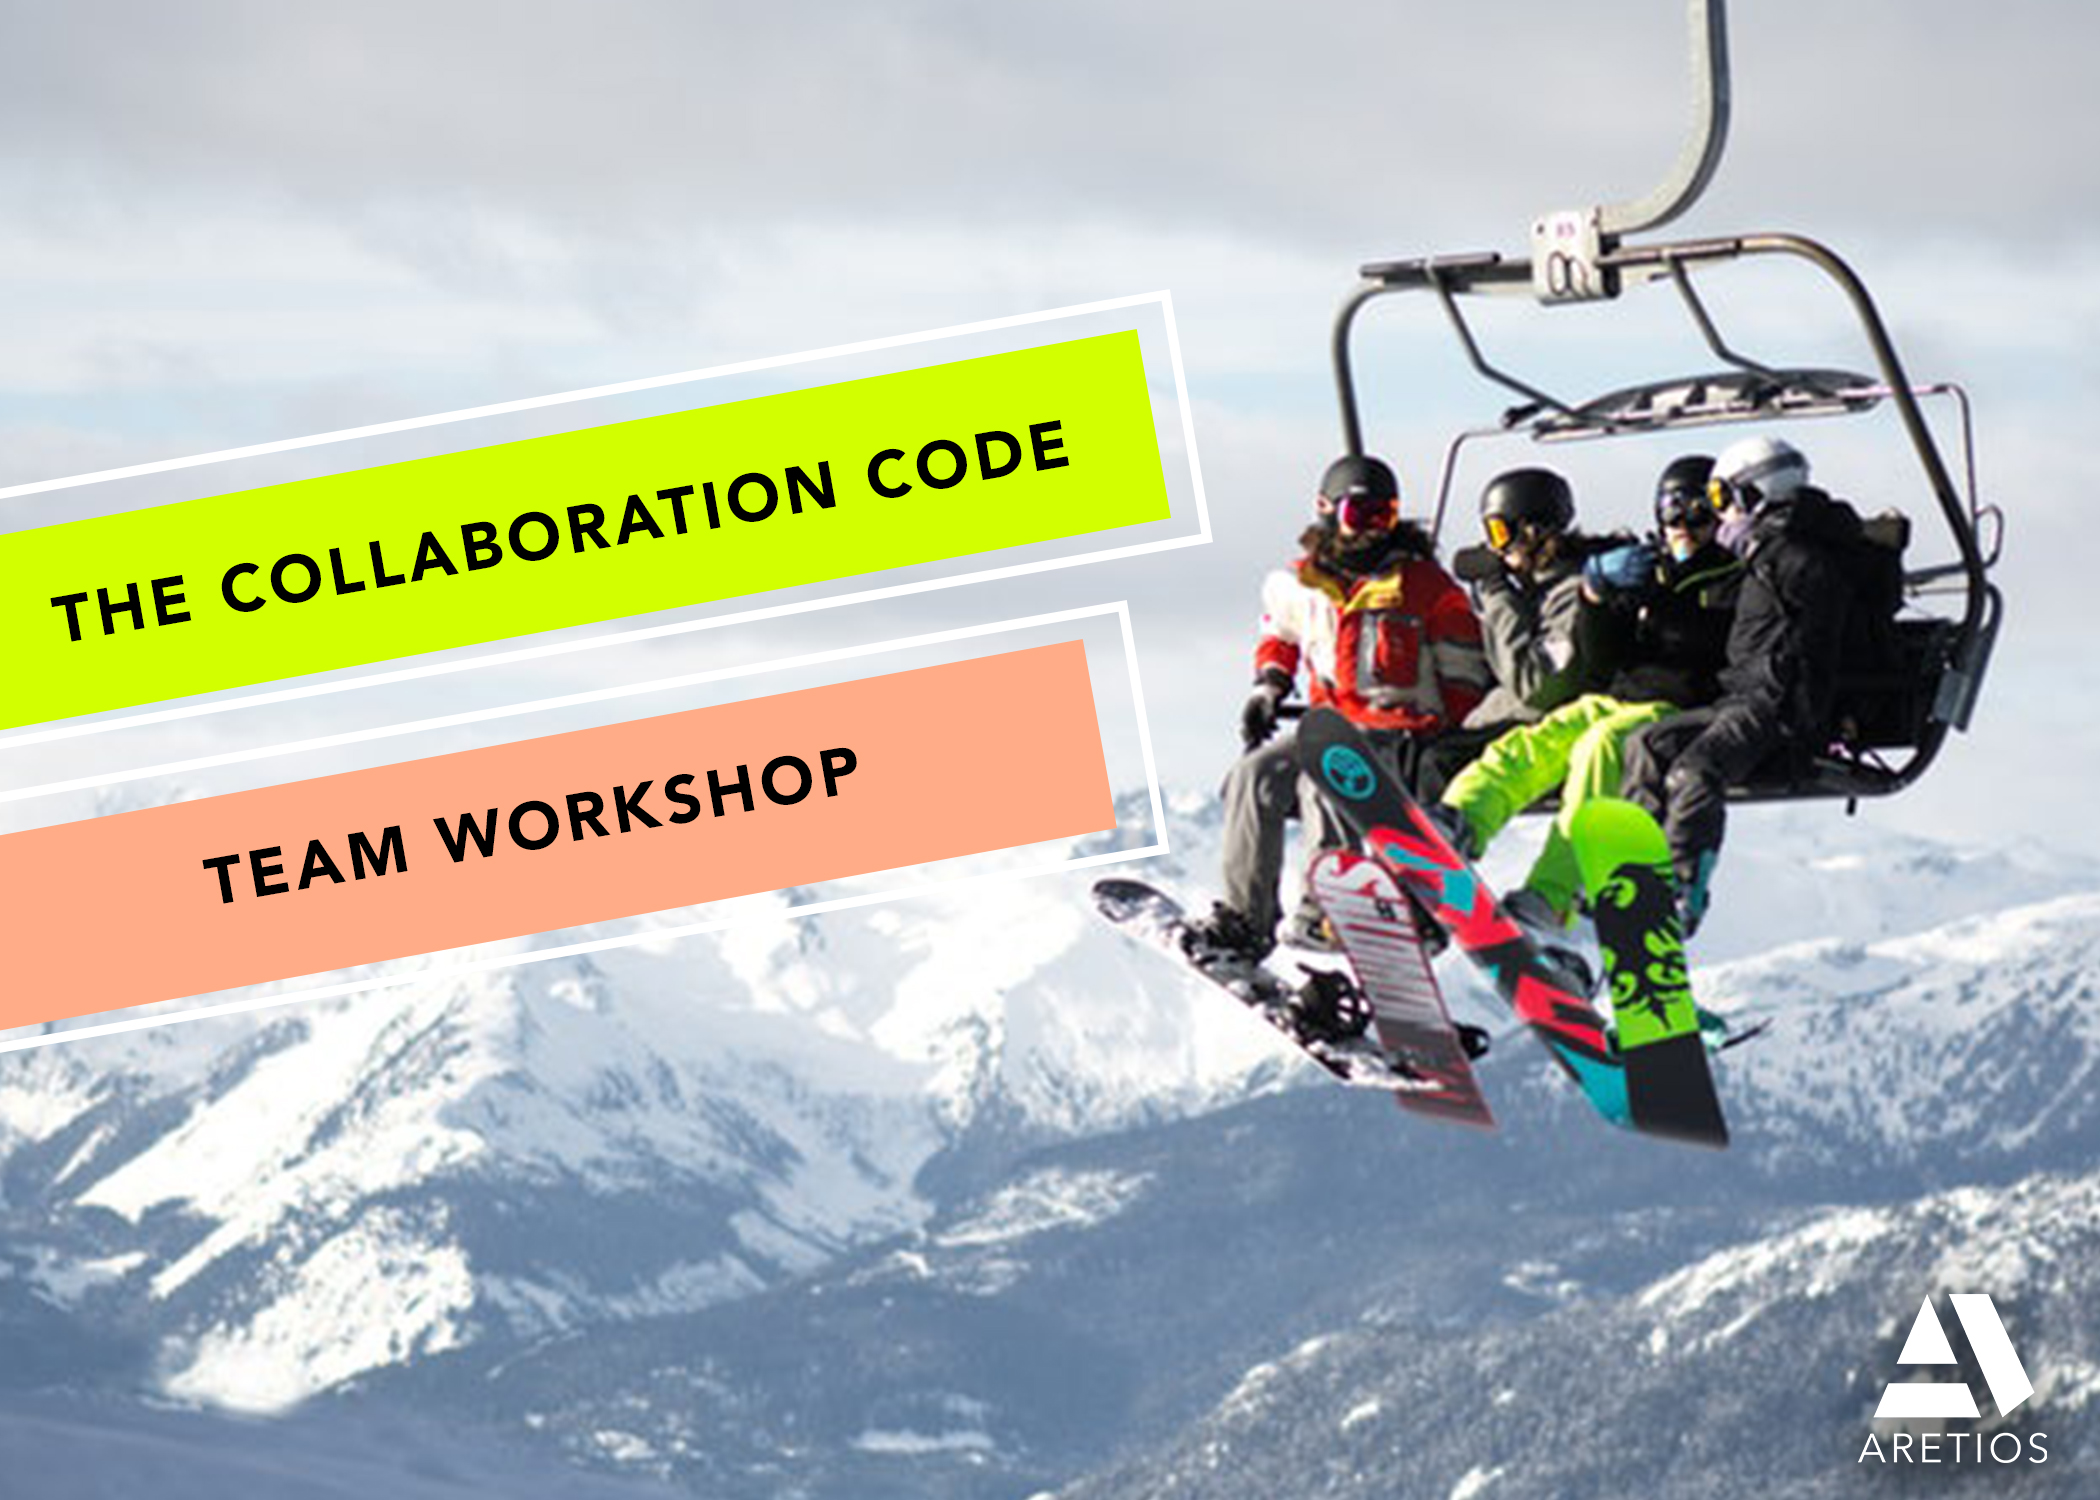 The Collaboration Code - In this two-part workshop, attendees will work together to discover the collaboration code and generate actionable takeaways through the practical and engaging application of activity-based learning.